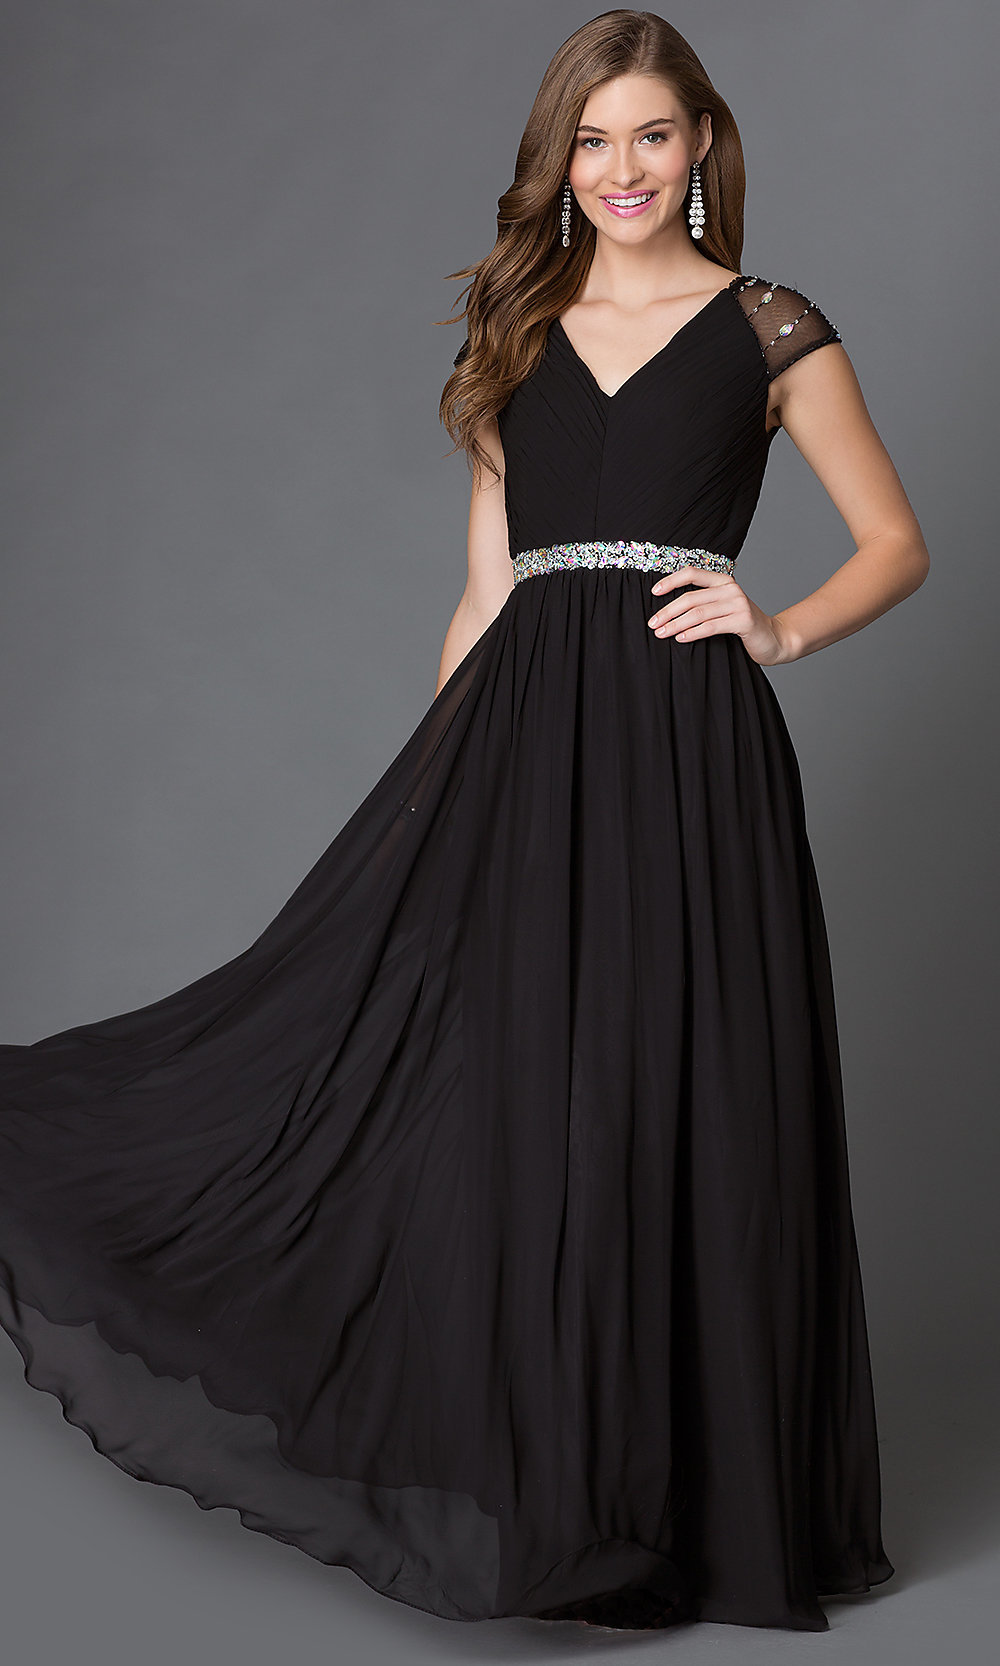 Long black evening dress with sleeves